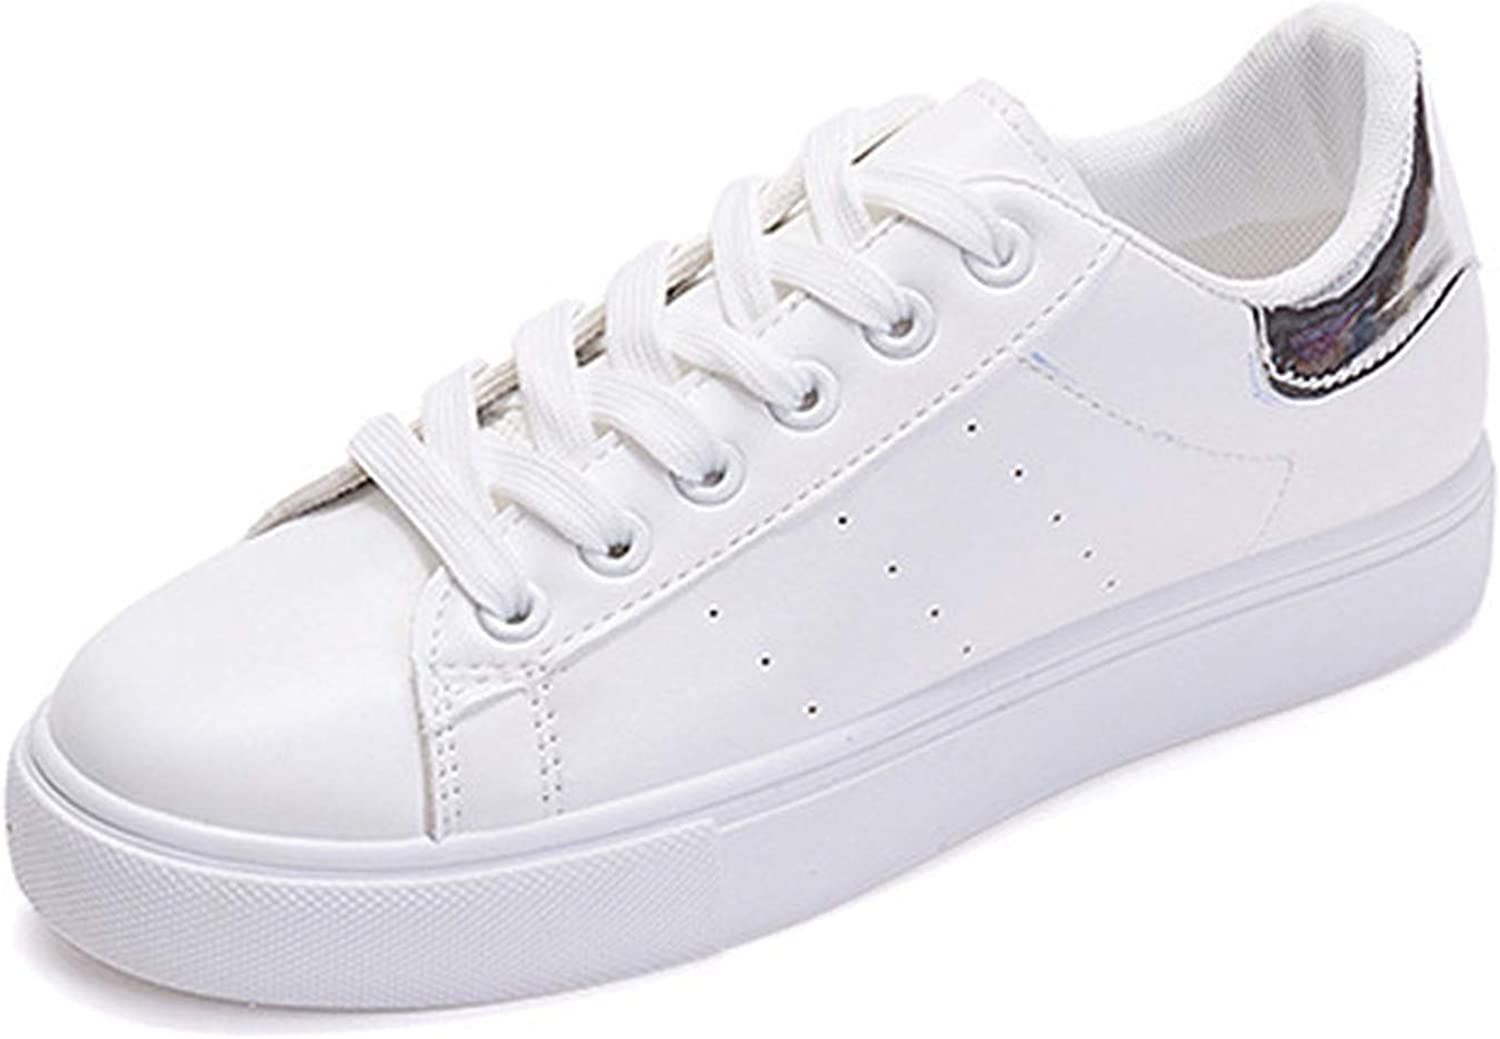 Women White shoes Flat Casual Vulcanized shoes Lace-Up Autumn Sneakers Platform Silver 5